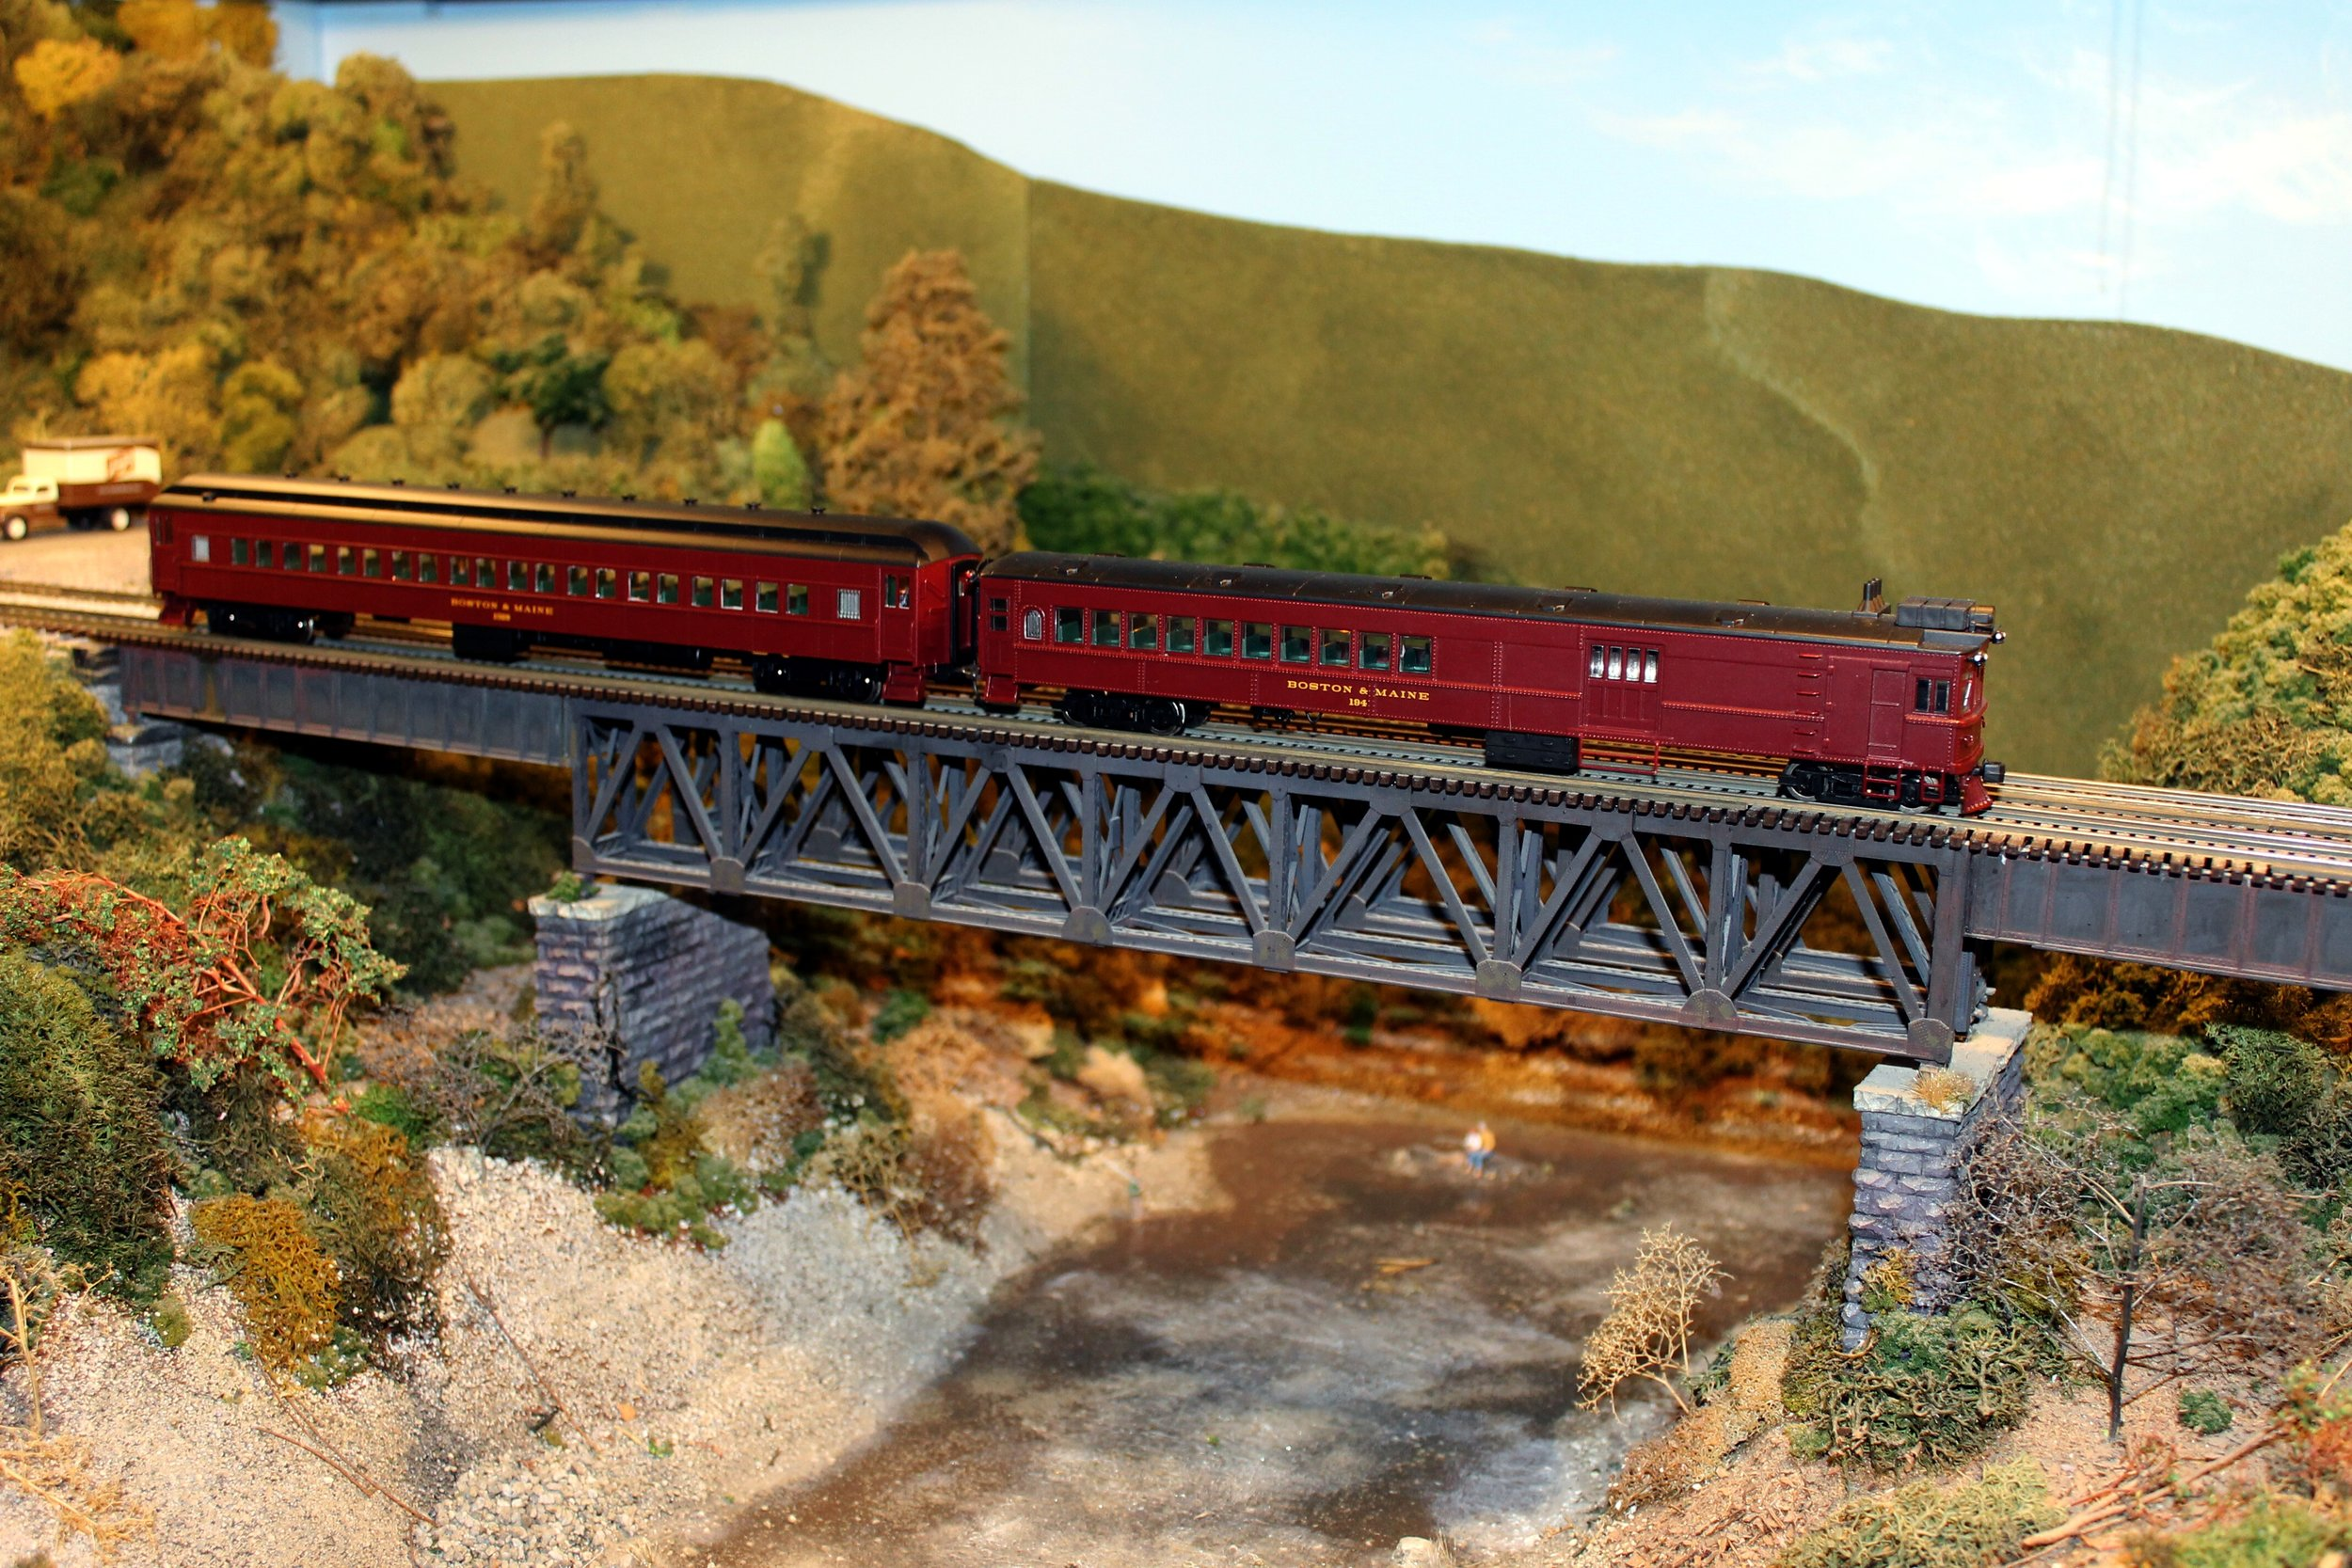 Boston and Maine doodlebug and trailer cross a typical Fitchburg Division deck truss bridge on the Nashua Valley Railroad Association layout in Shirley, Mass. Sept. 17, 2016. Mal Sockol photo.